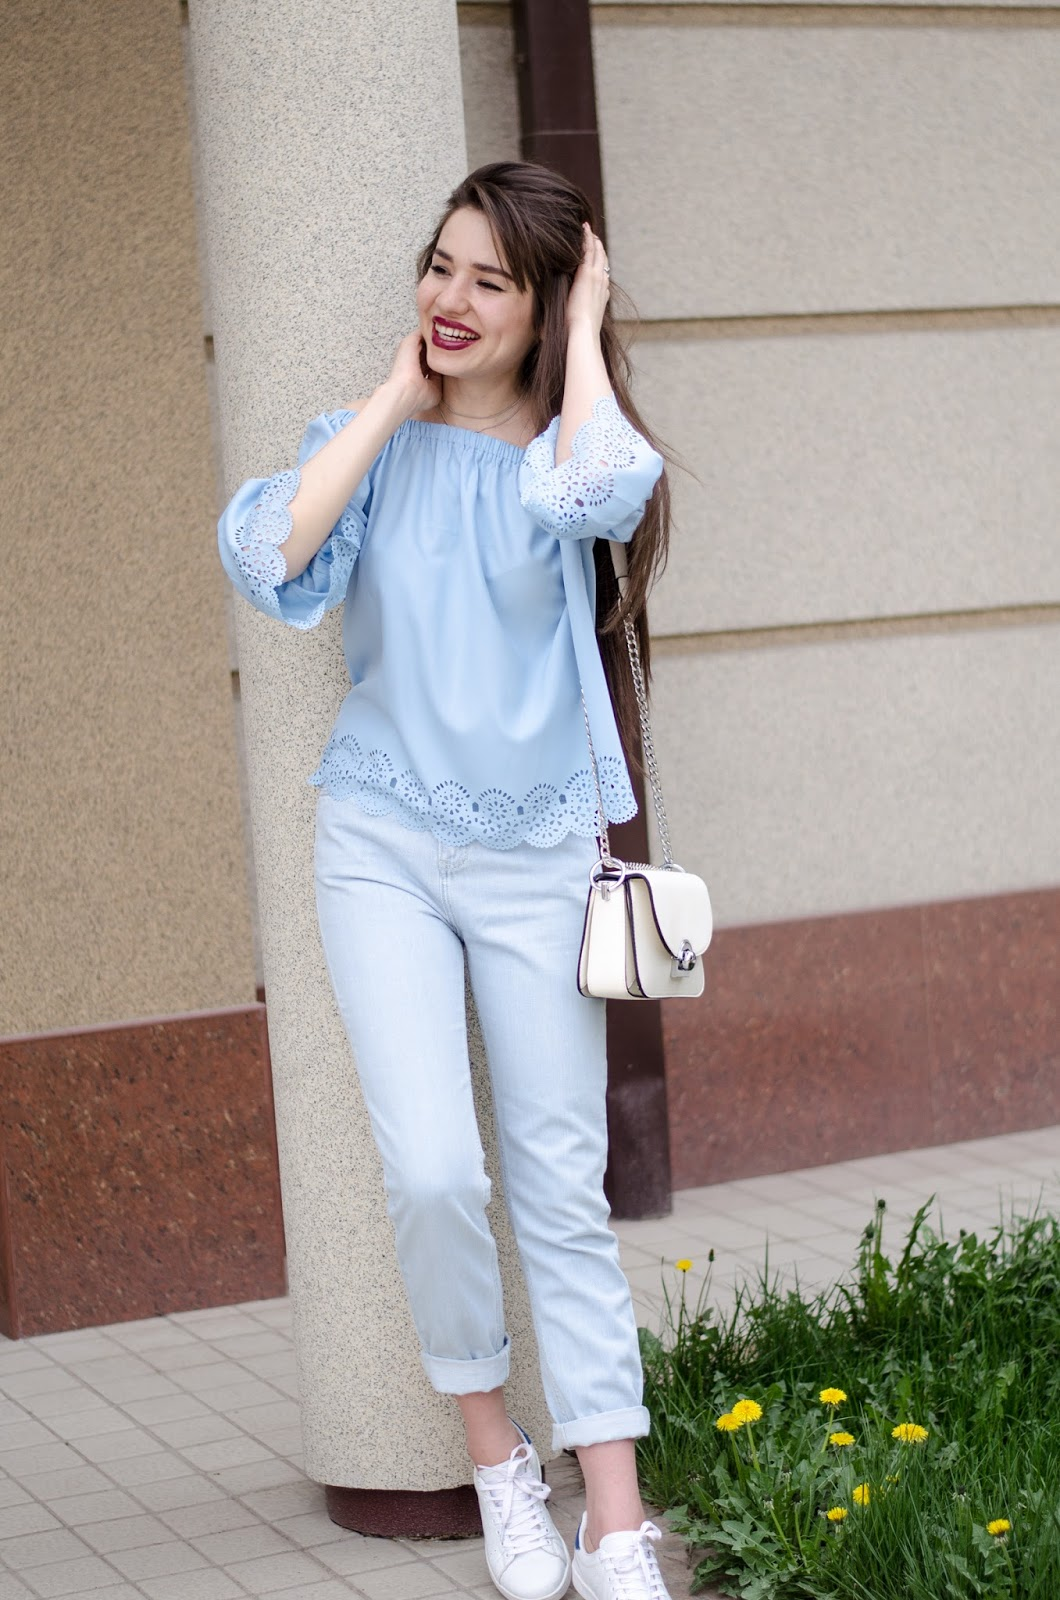 fashion blogger diyorasnotes diyorabeta offtheshoulder top romwe denim jeans white sneakers